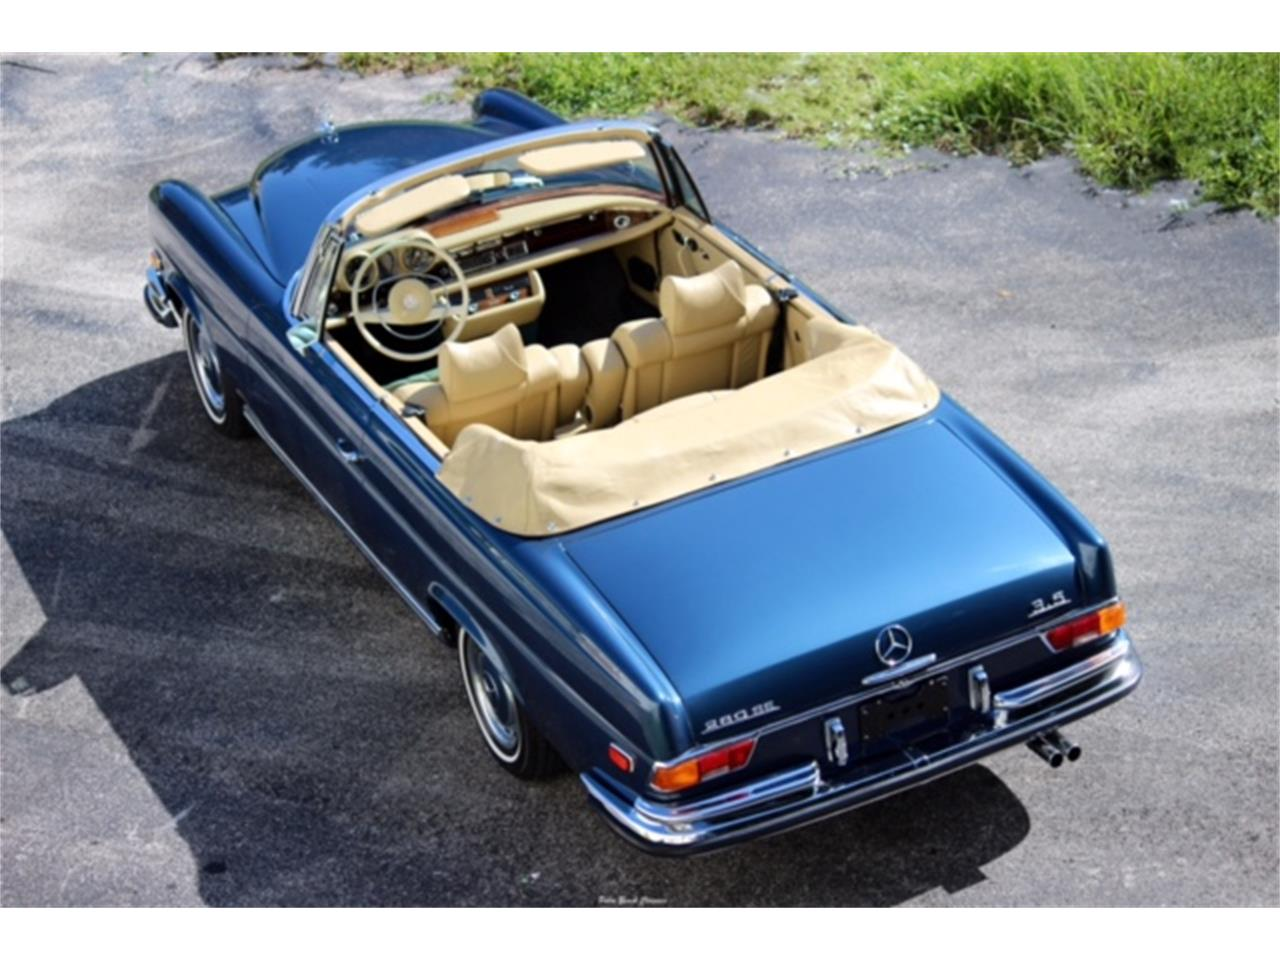 Large Picture of '71 Mercedes-Benz 280SE located in palm beach gardens Florida Offered by The Toy Store - L75C